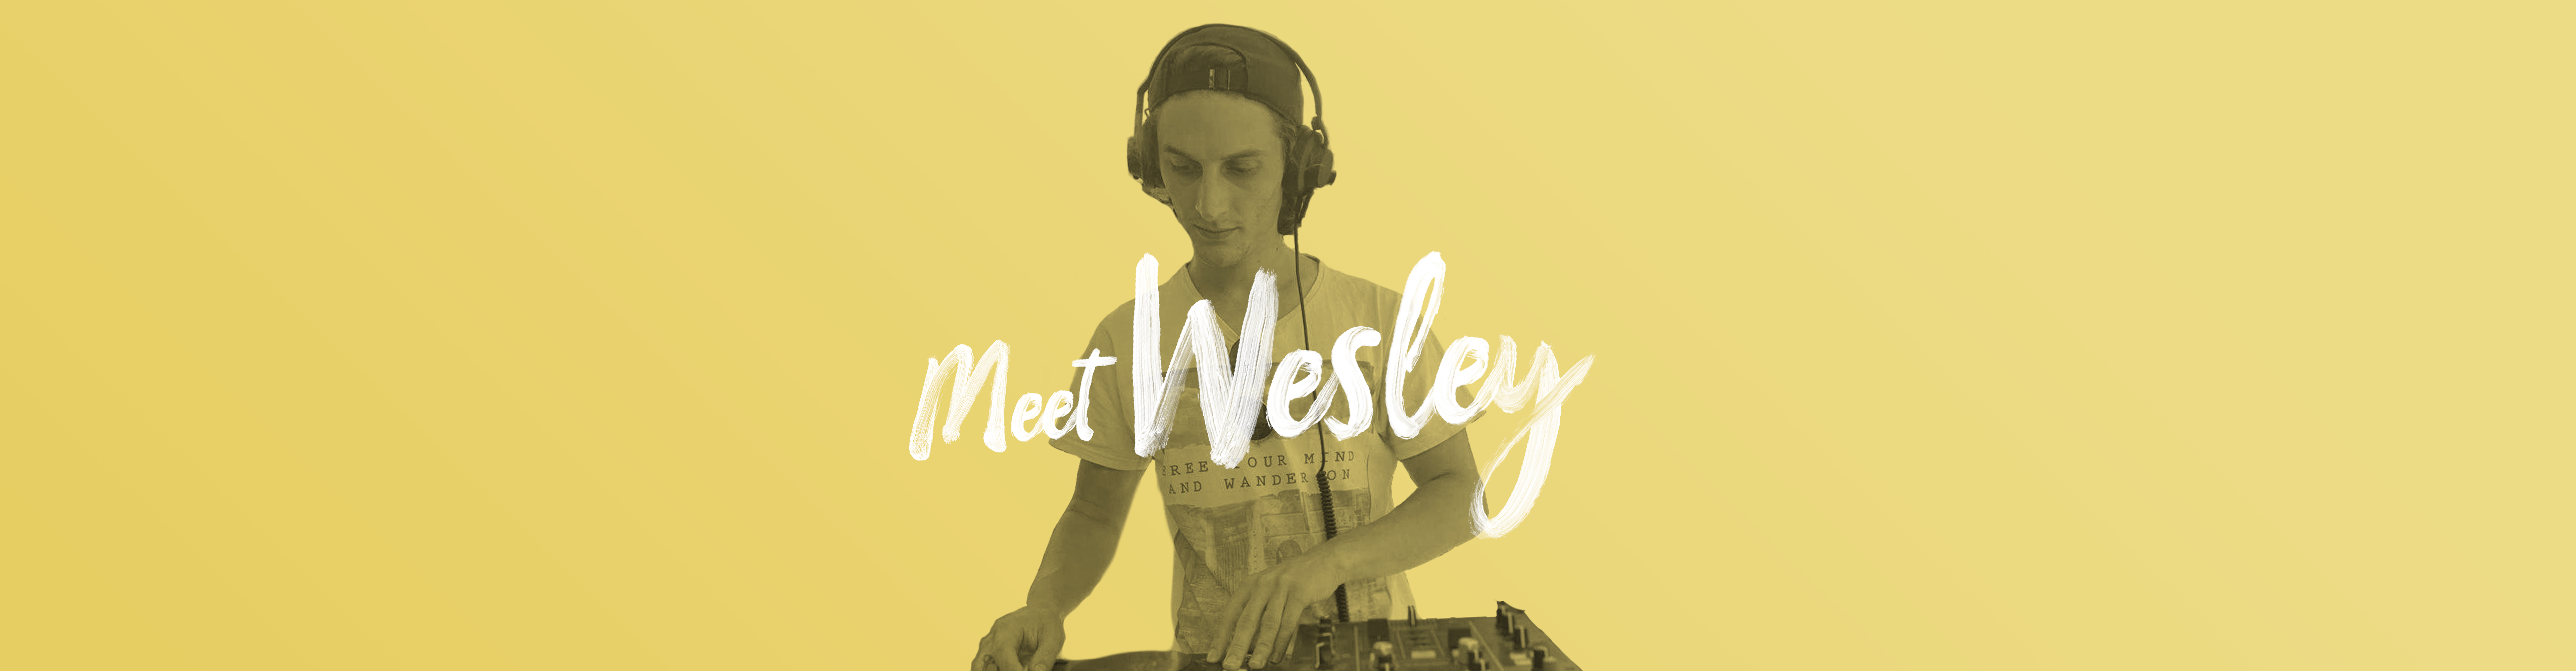 Wes-banner.png